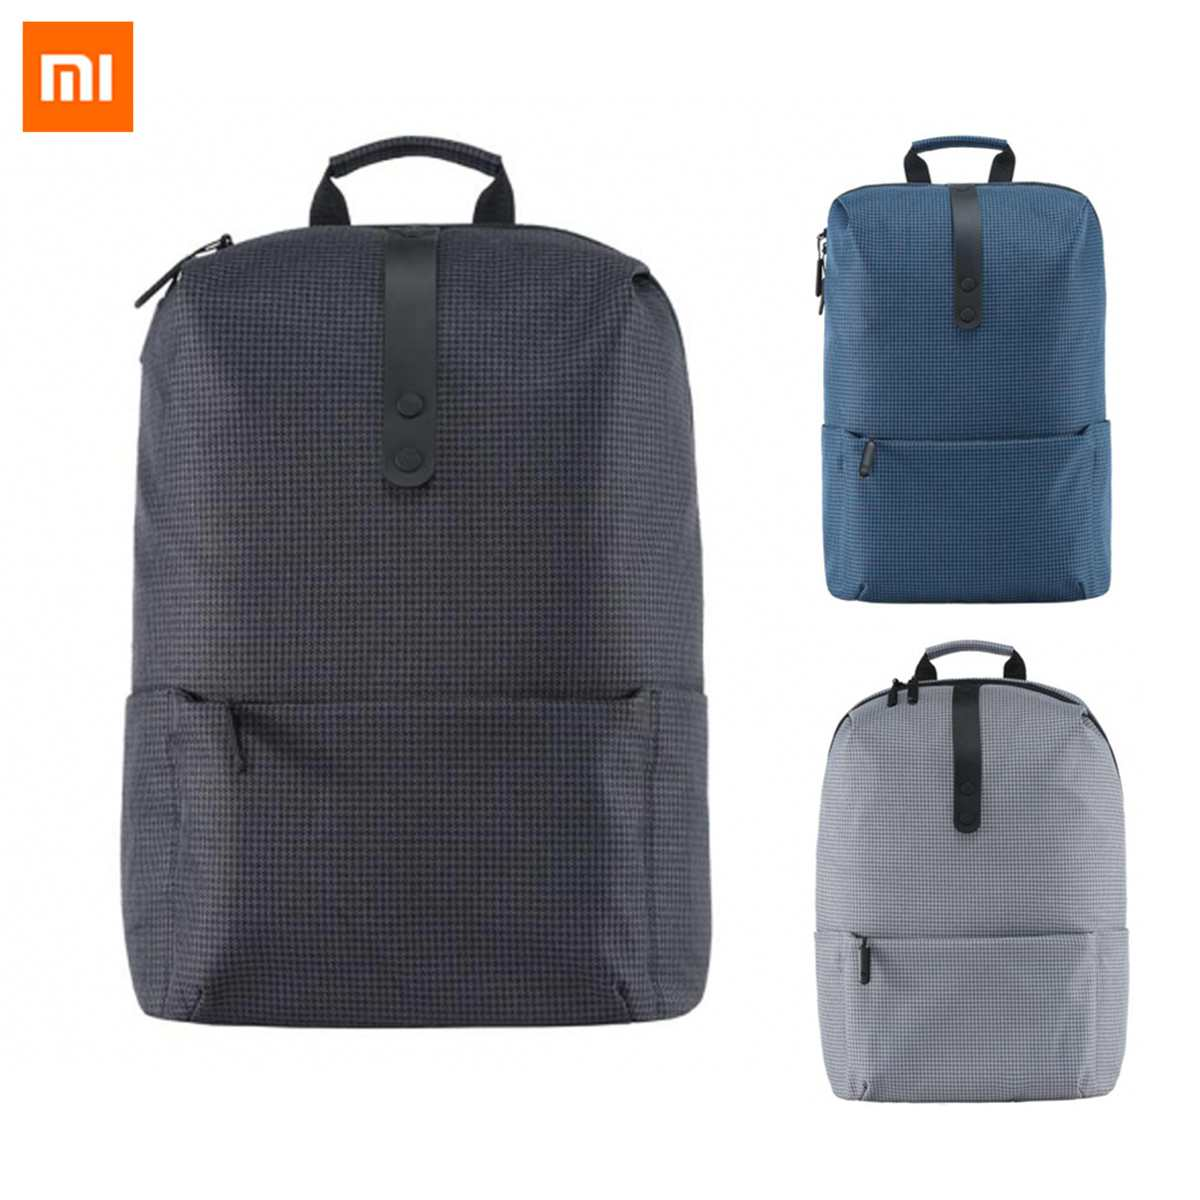 Xiaomi College Style Backpack 15.6 Inch Laptop Computer Bags Large Capacity School Backpacks for Women Men Boy Girl image